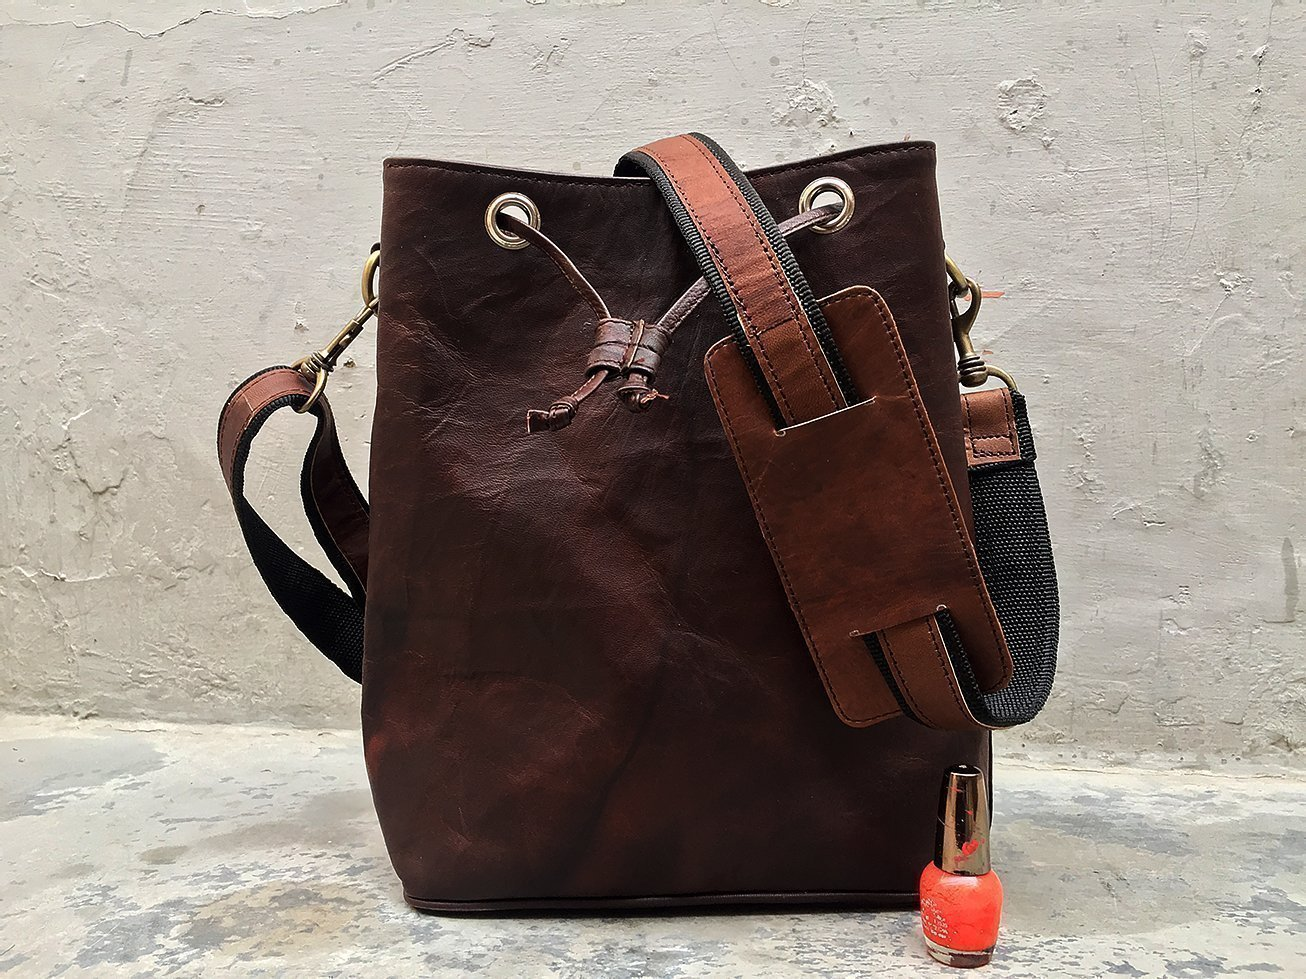 Handmade Vintage Genuine Leather Drawstring small shoulder crossbody Bucket Bag Purse Tote for Women